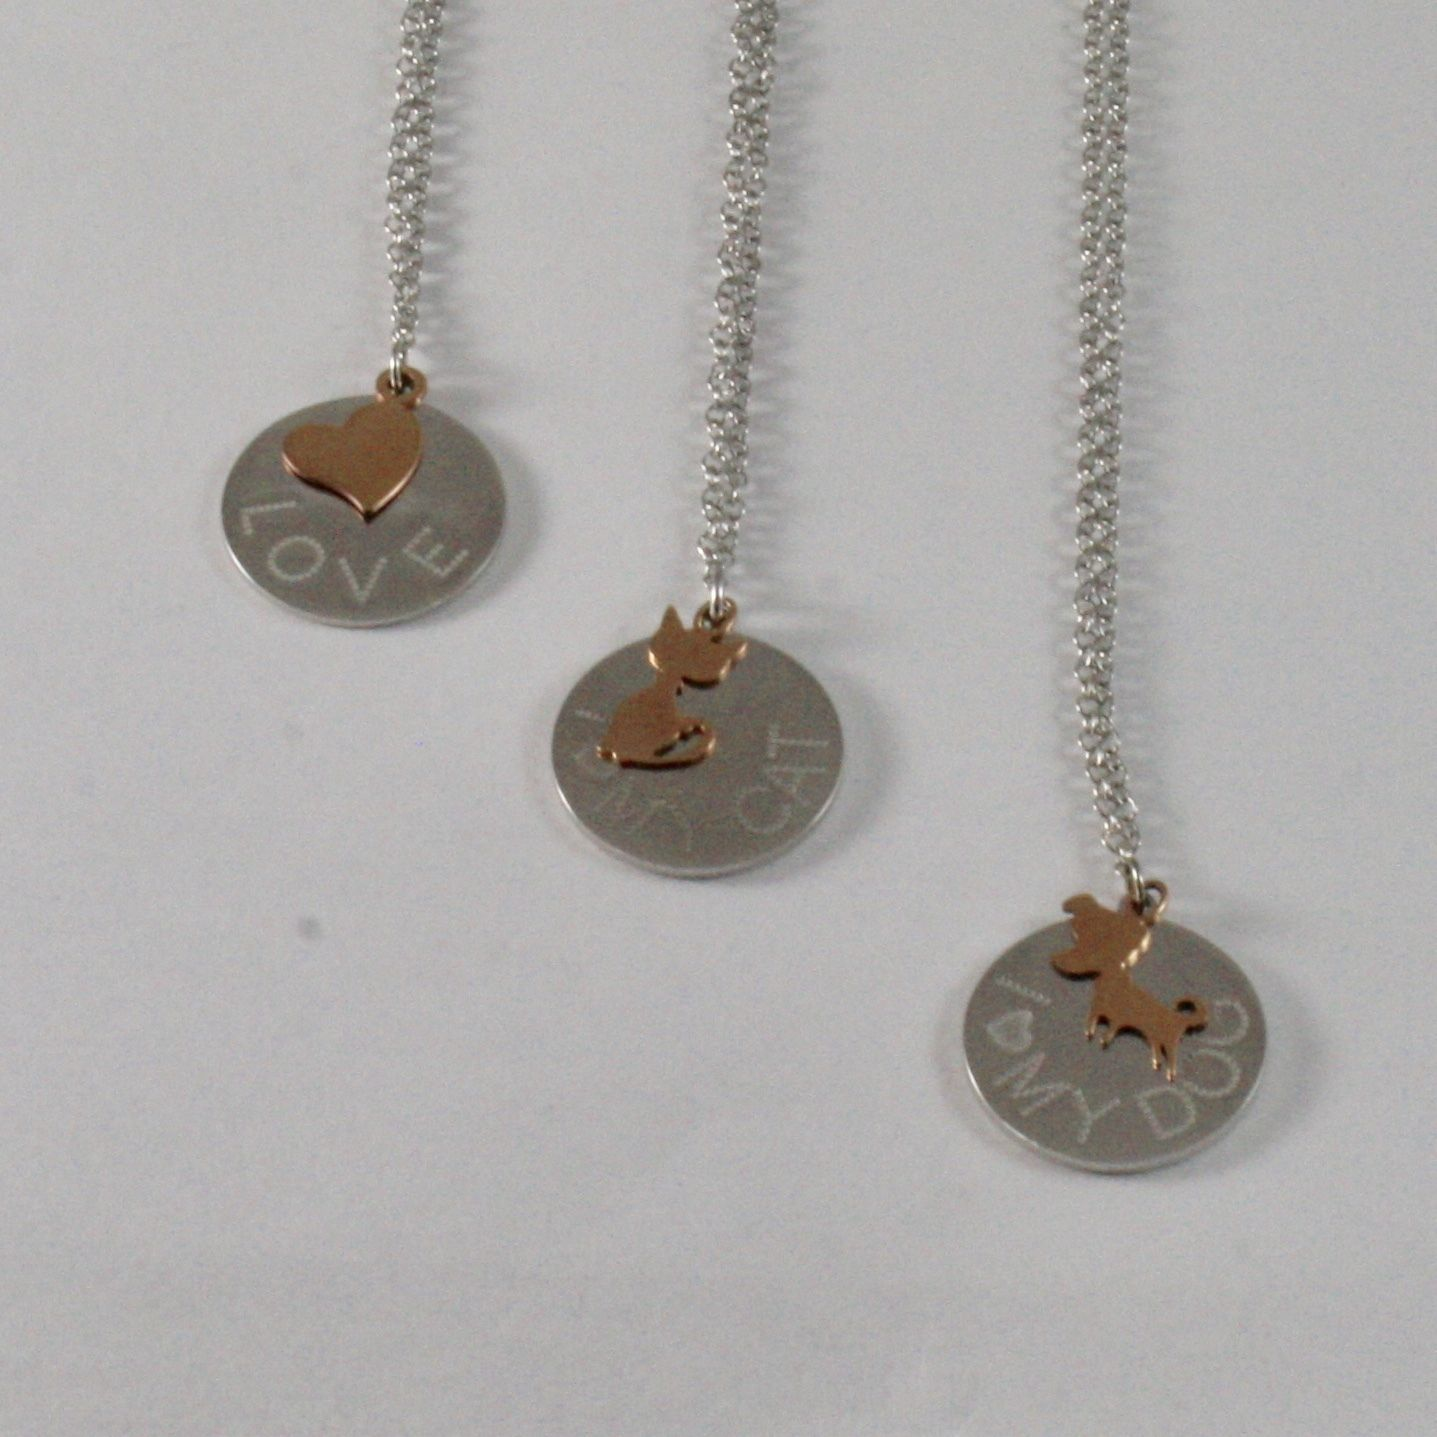 925 STERLING SILVER NECKLACE JACK&CO WITH HEART DOG 0,5 CAT GOLD PINK 9KT 60 CM